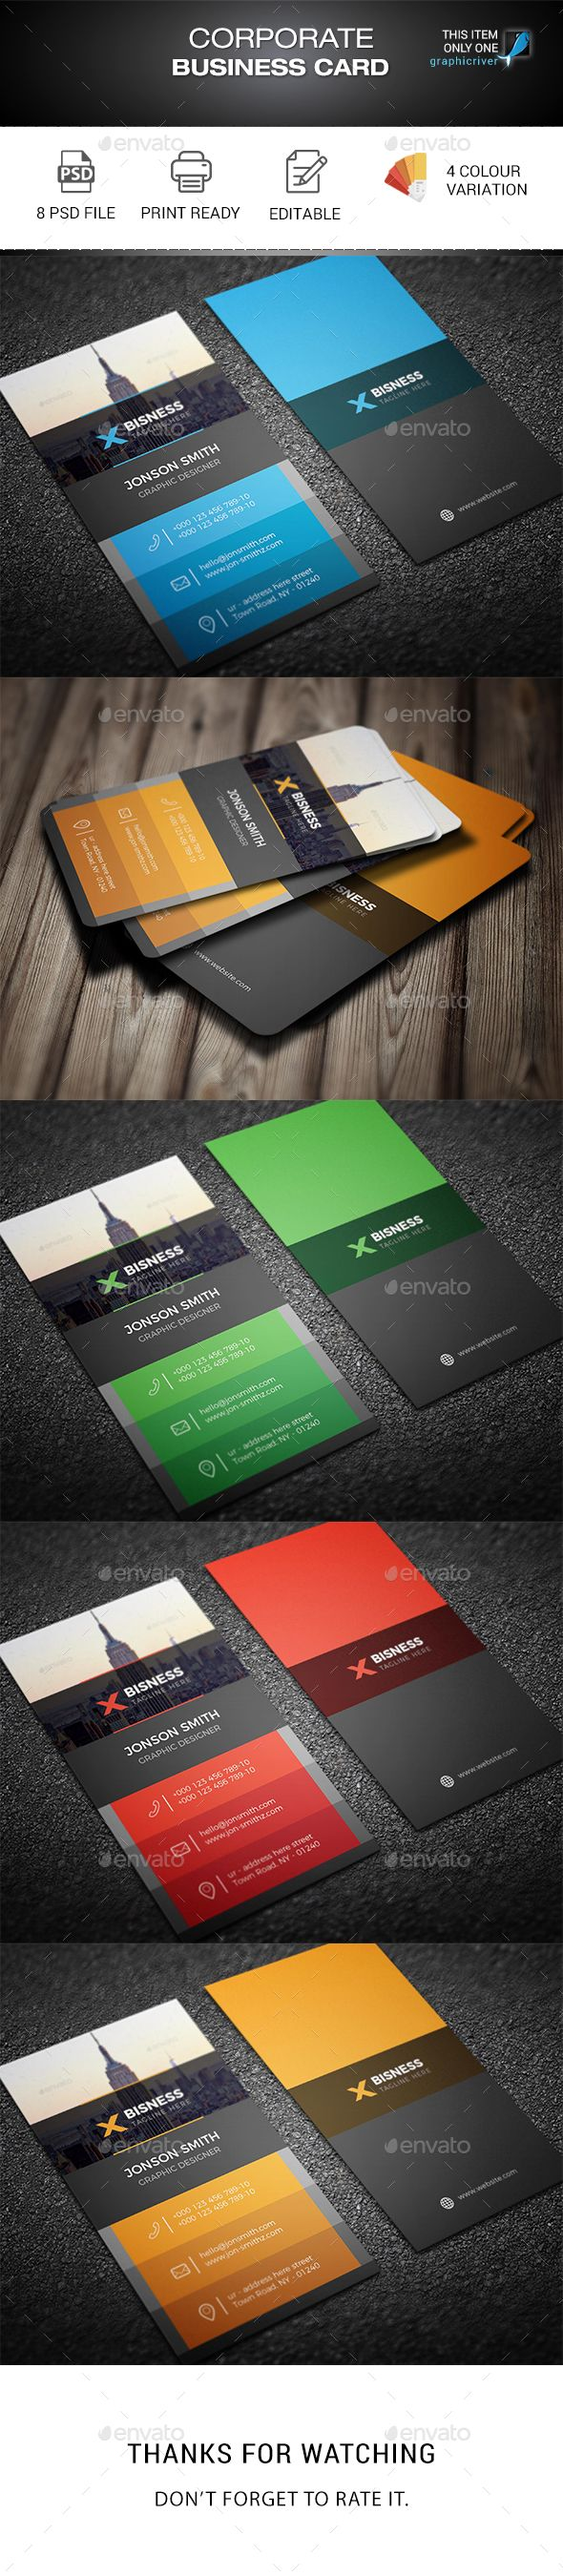 Corporate Business Card | Corporate business, Business cards and ...